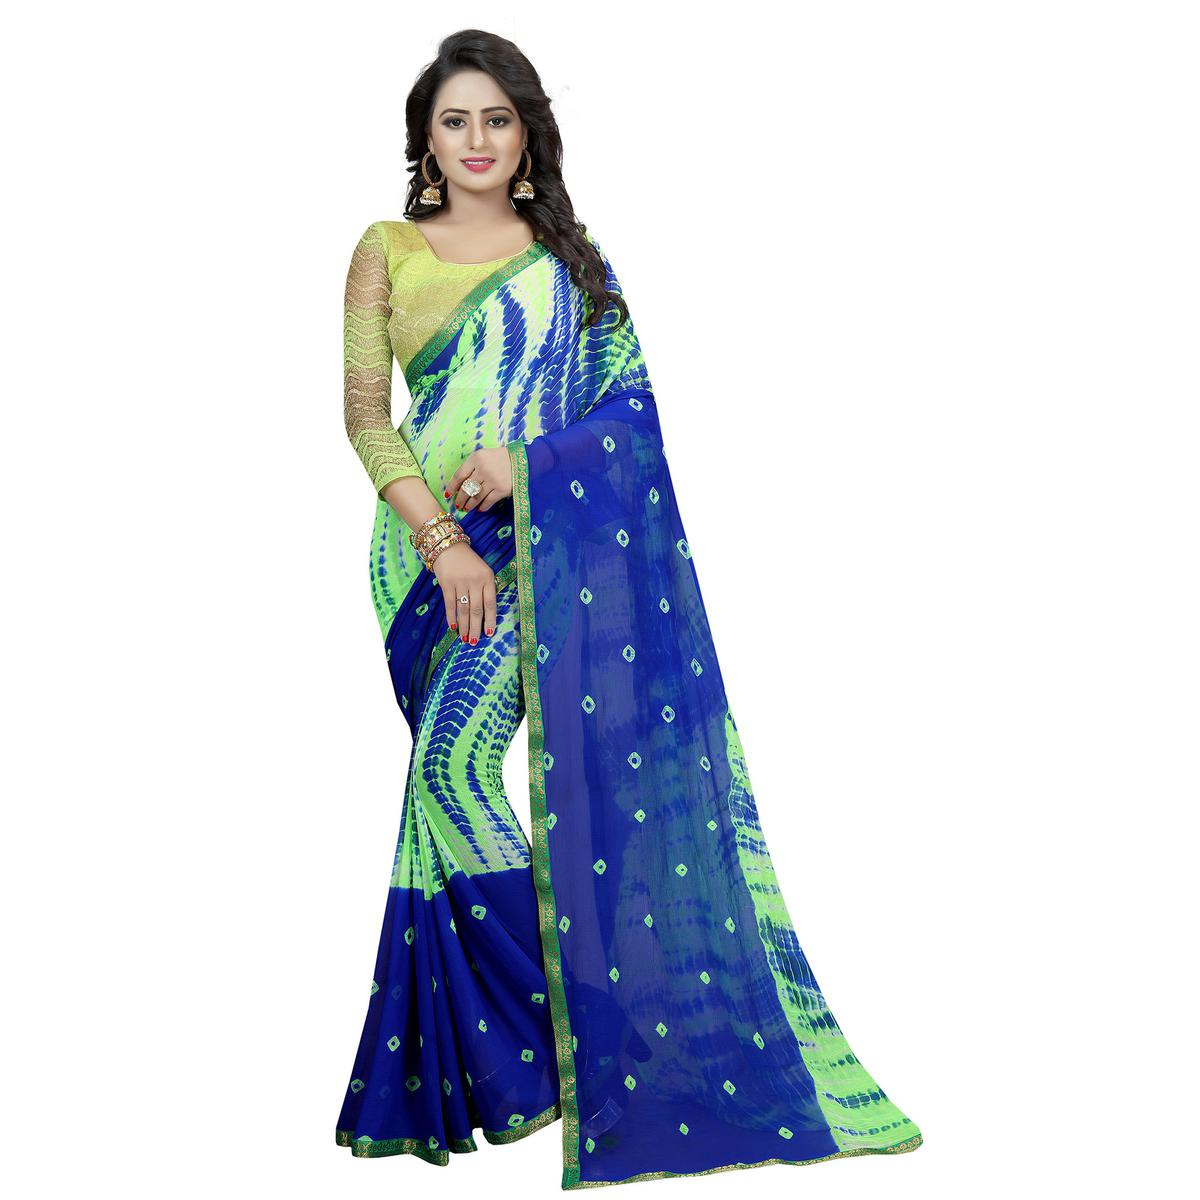 Lovely Green-Blue Colored Casual Printed Chiffon Saree